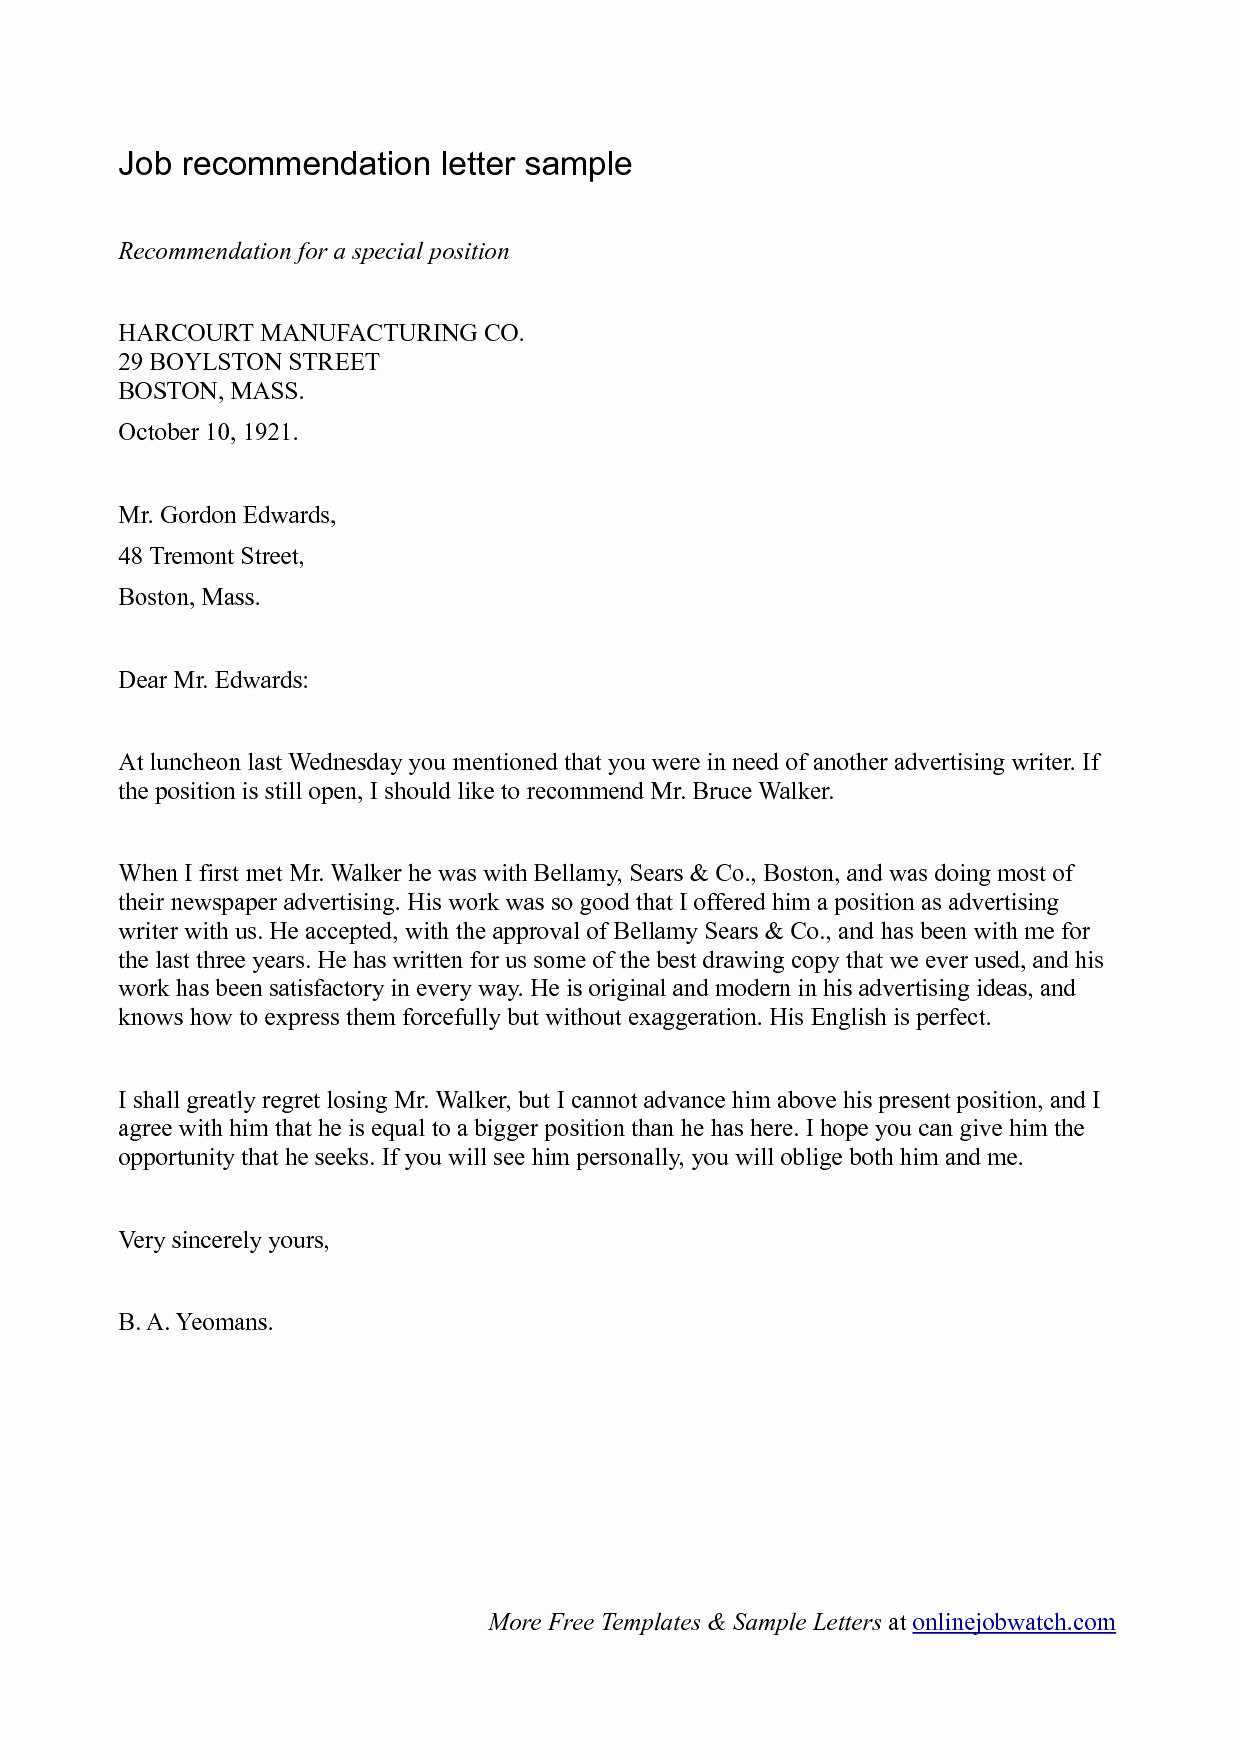 Letter Of Recomendation for Employment Best Of Simple Guide Professional Reference Letter with Samples